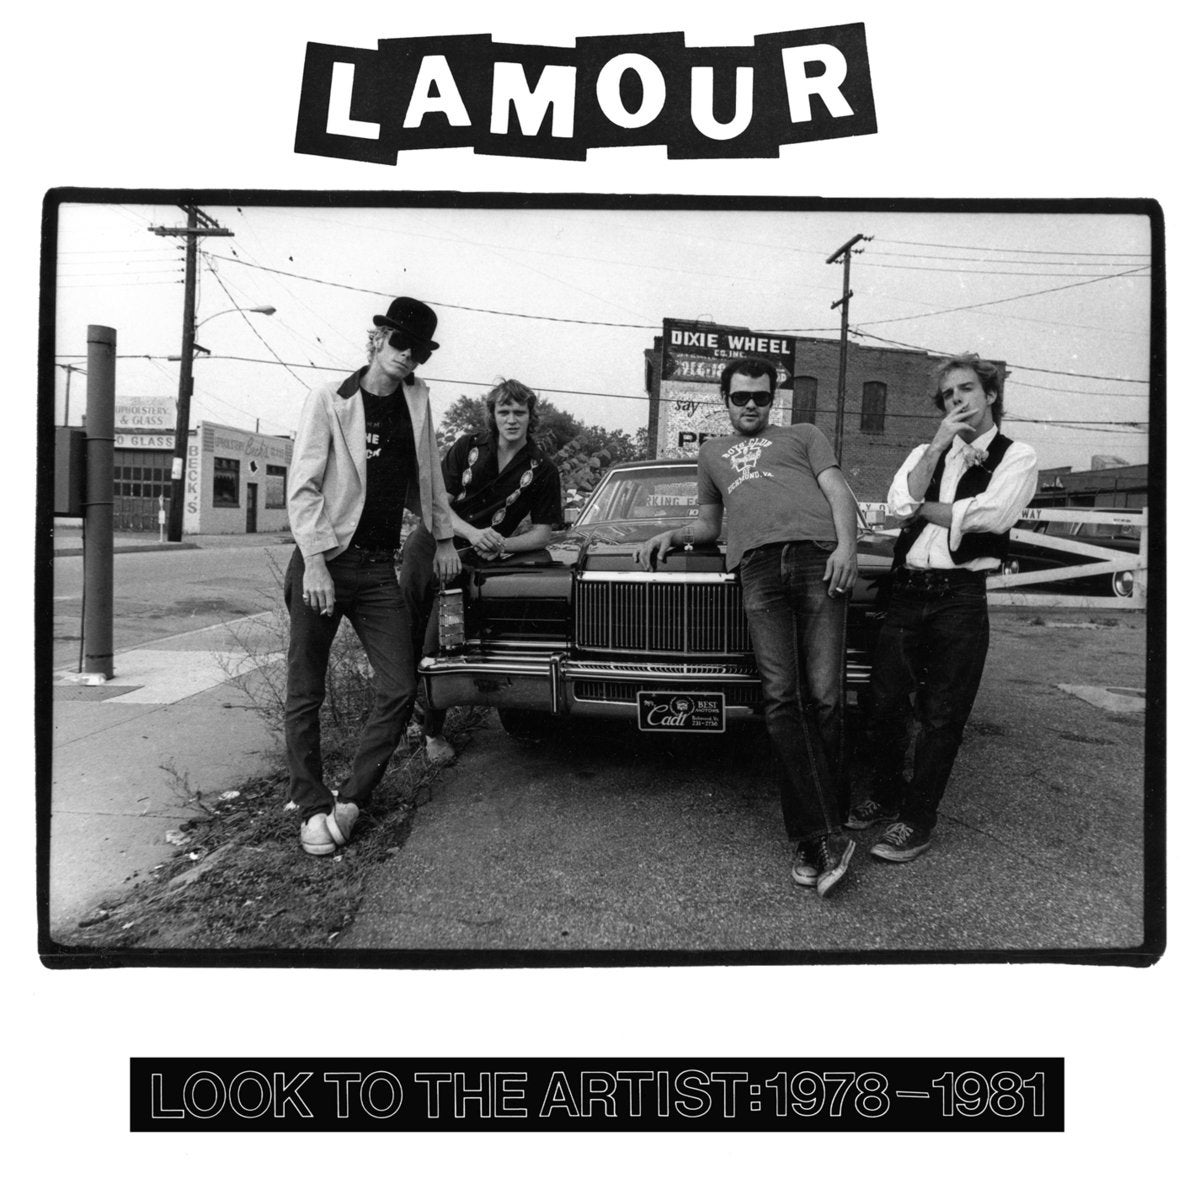 L'amour - Look to the Artist: 1978-1981 LP